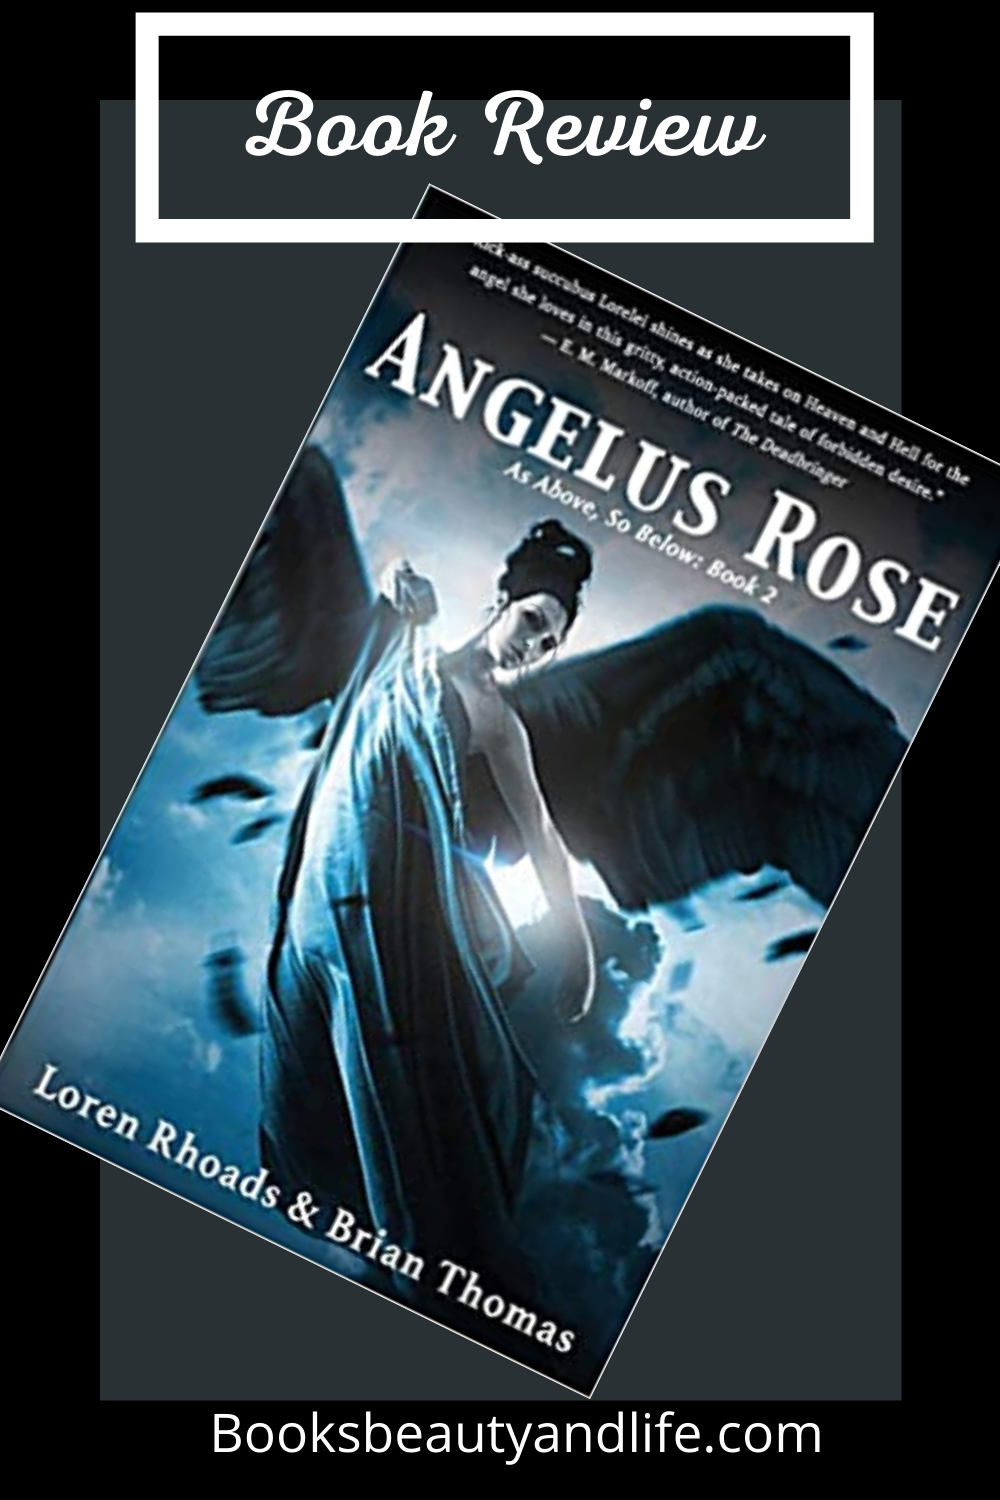 Angelus Rose: As Above, So Below Book  by Loren Rhoads, Brian Thomas